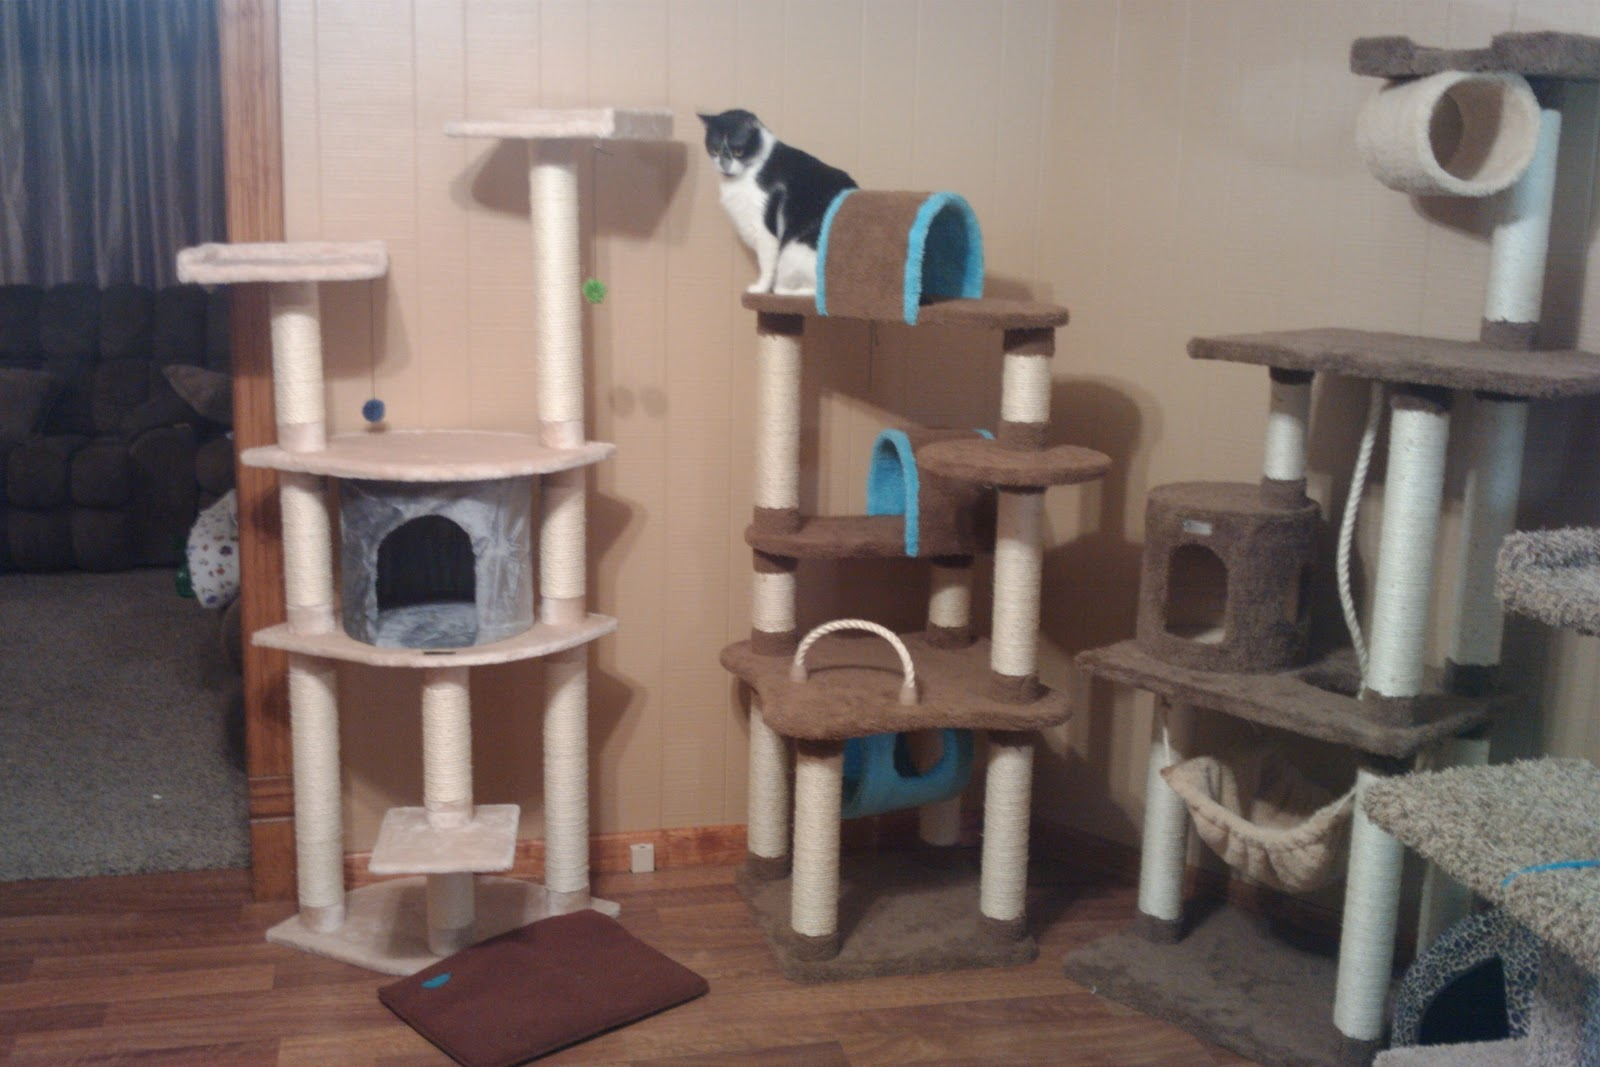 Then we set up Cat Tree #2